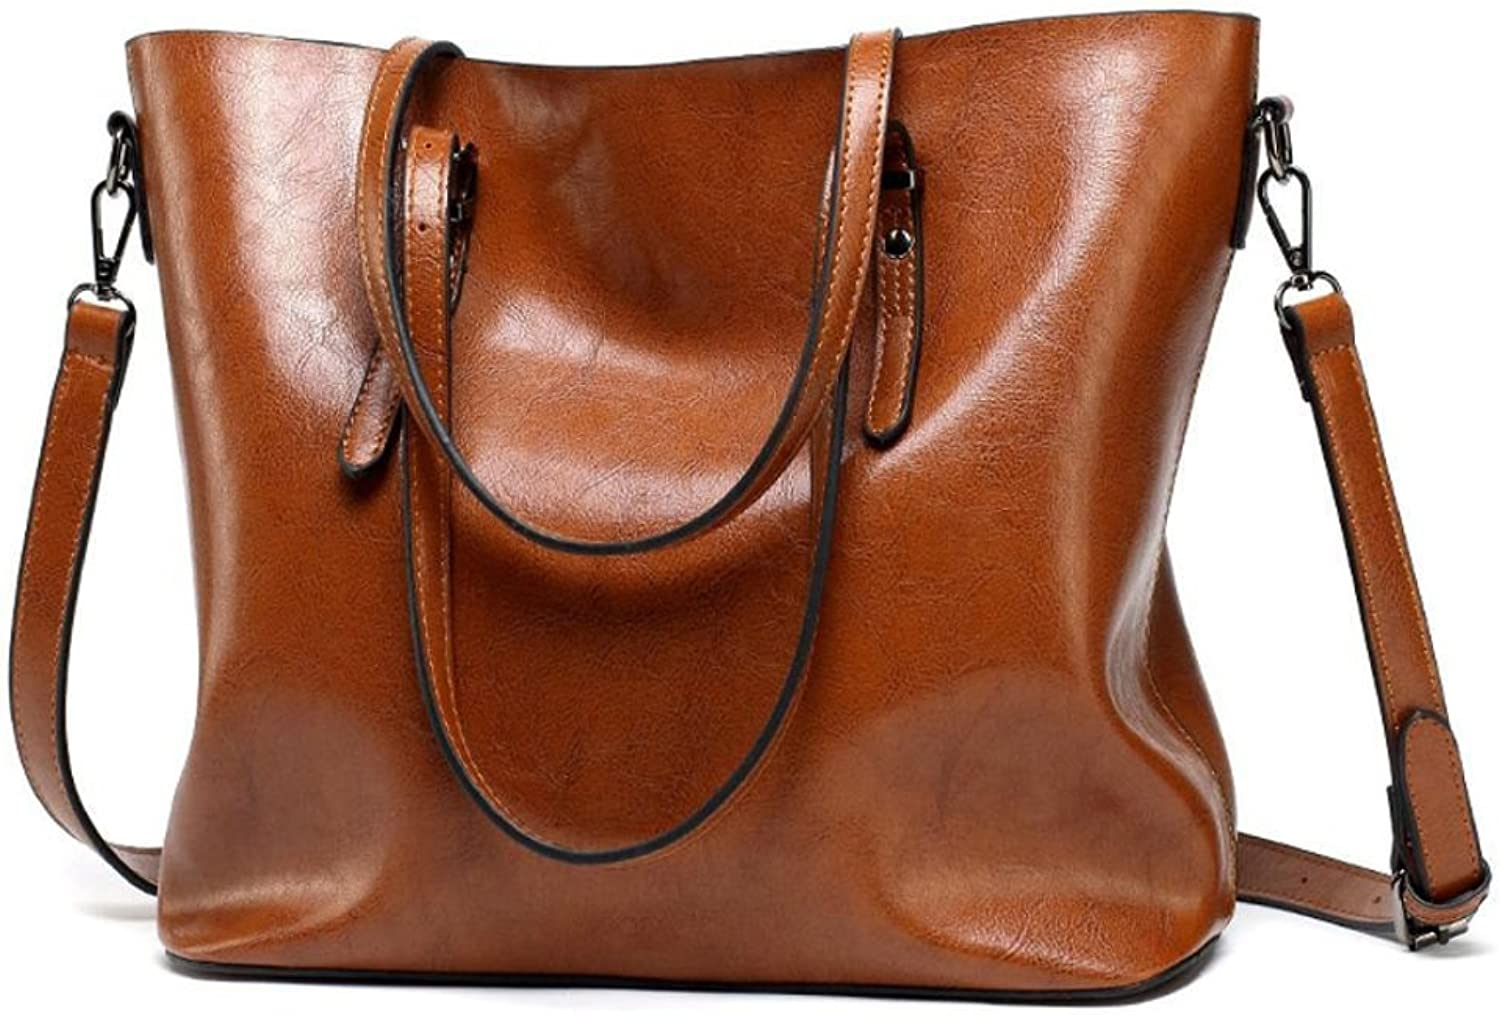 YKXIAOYU Handbags for Women European and American Fashion New Women's Bag Retro Oil Leather Bag New Simple PU Fabric Brown